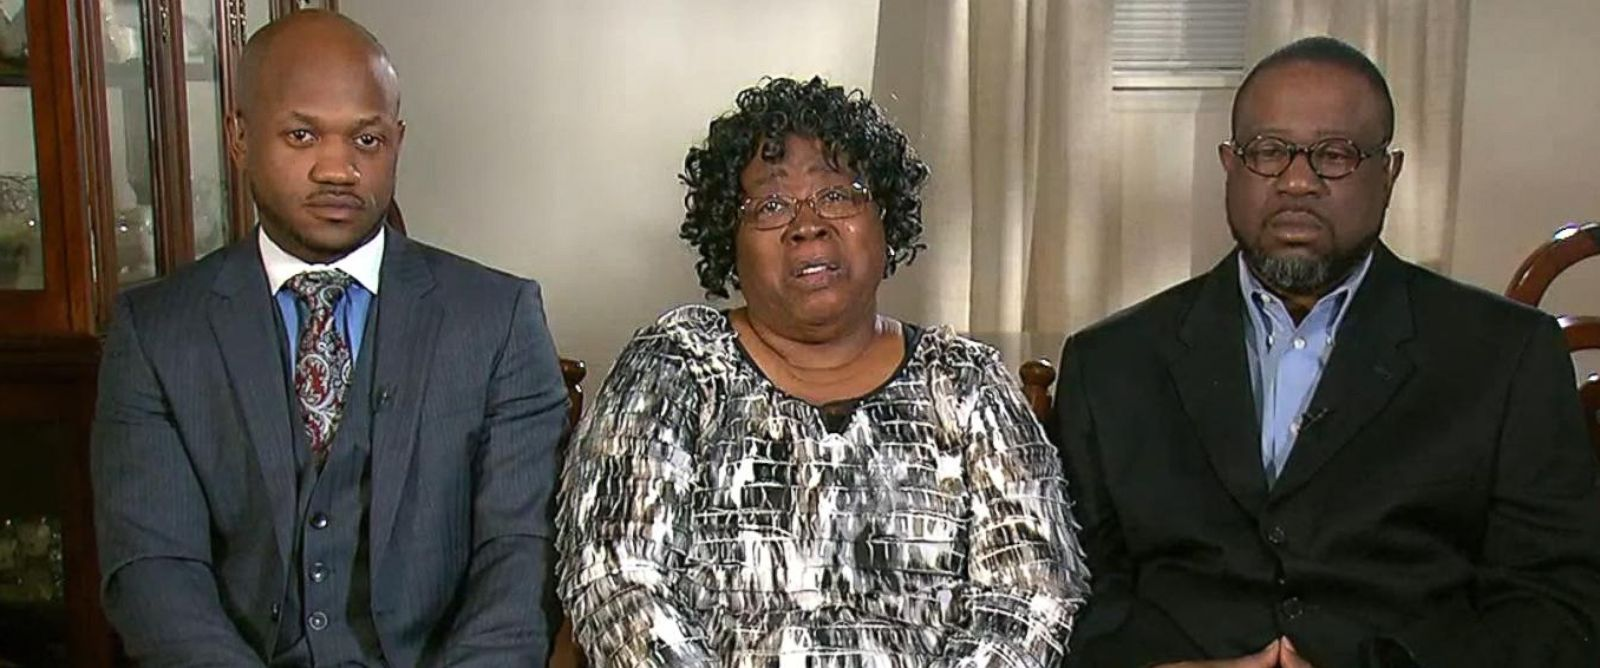 PHOTO: The relatives of Walter Scott say they are devastated by the deadly police shooting that ended Scotts life. From left, Walter Scotts mother, Judy Scott, Walter Scotts brother, Anthony Scott, and family attorney, Chris Stewart.